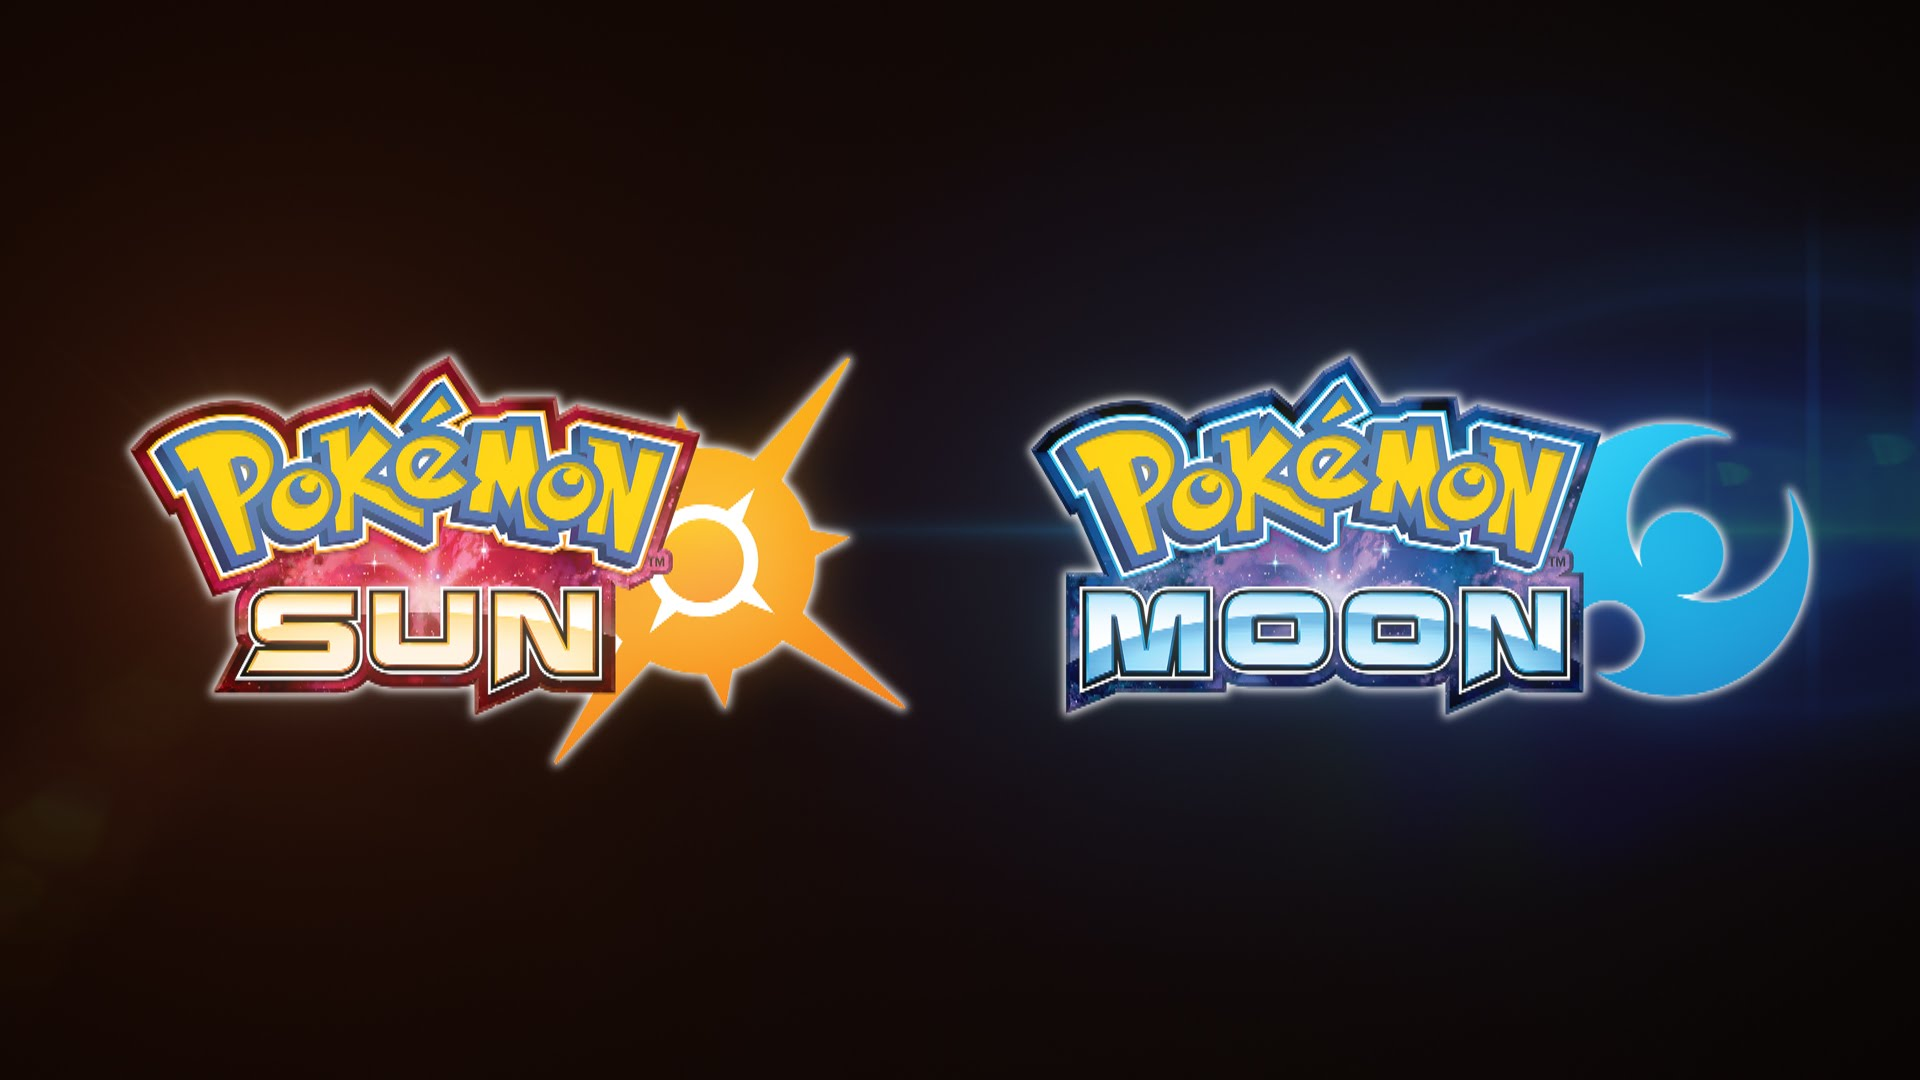 New Pokémon Sun and Pokémon Moon Video Games Coming to Nintendo 3DS in Late 2016